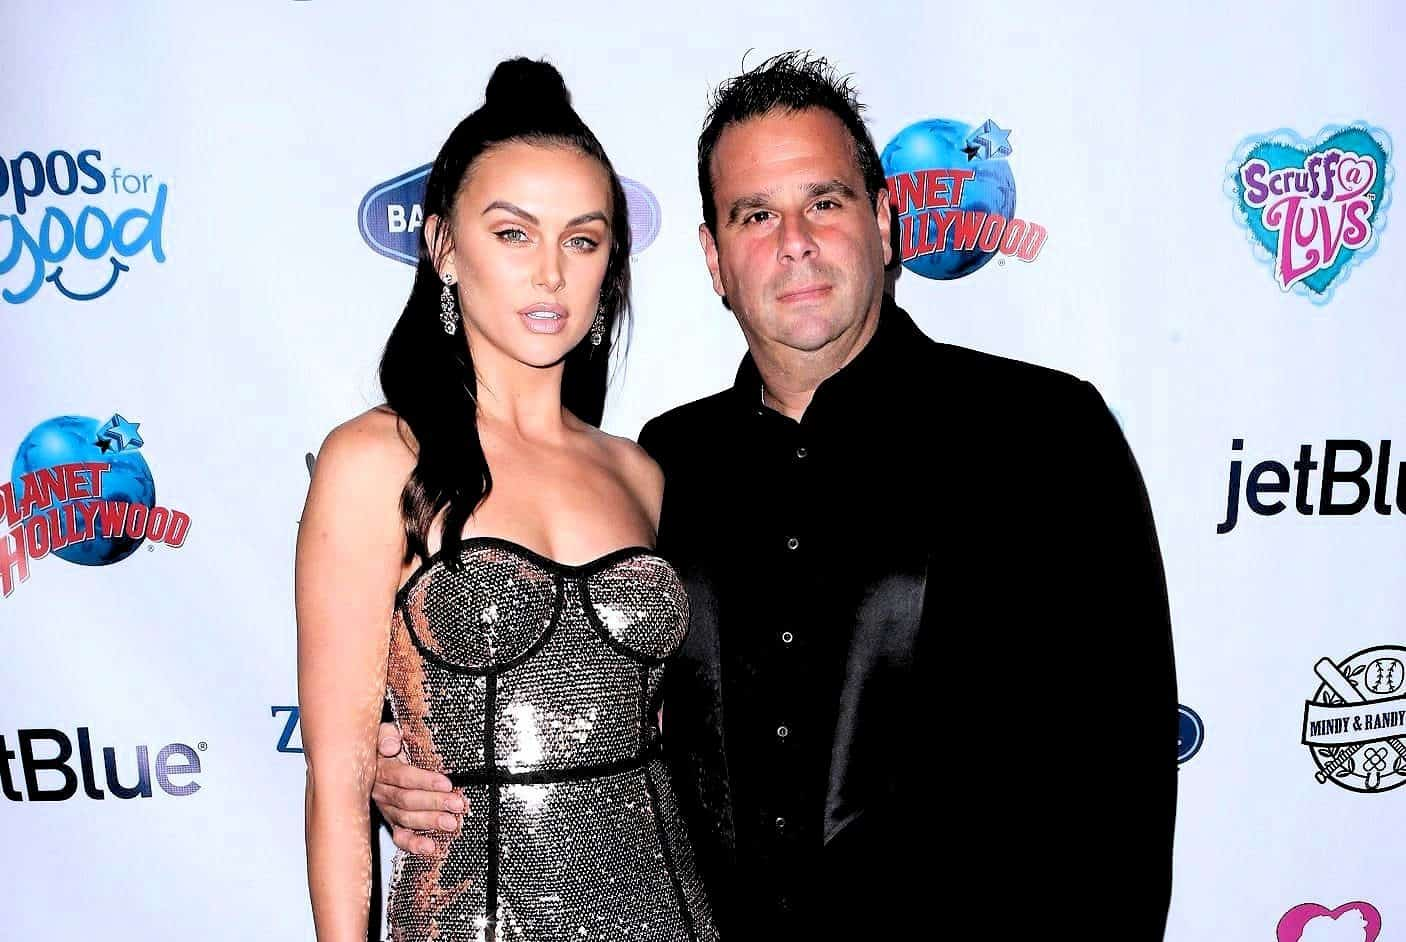 REPORT: Vanderpump Rules Cast Thinks It's 'B.S.' That Lala Kent Doesn't Show Her Relationship With Randall Emmett on the Show